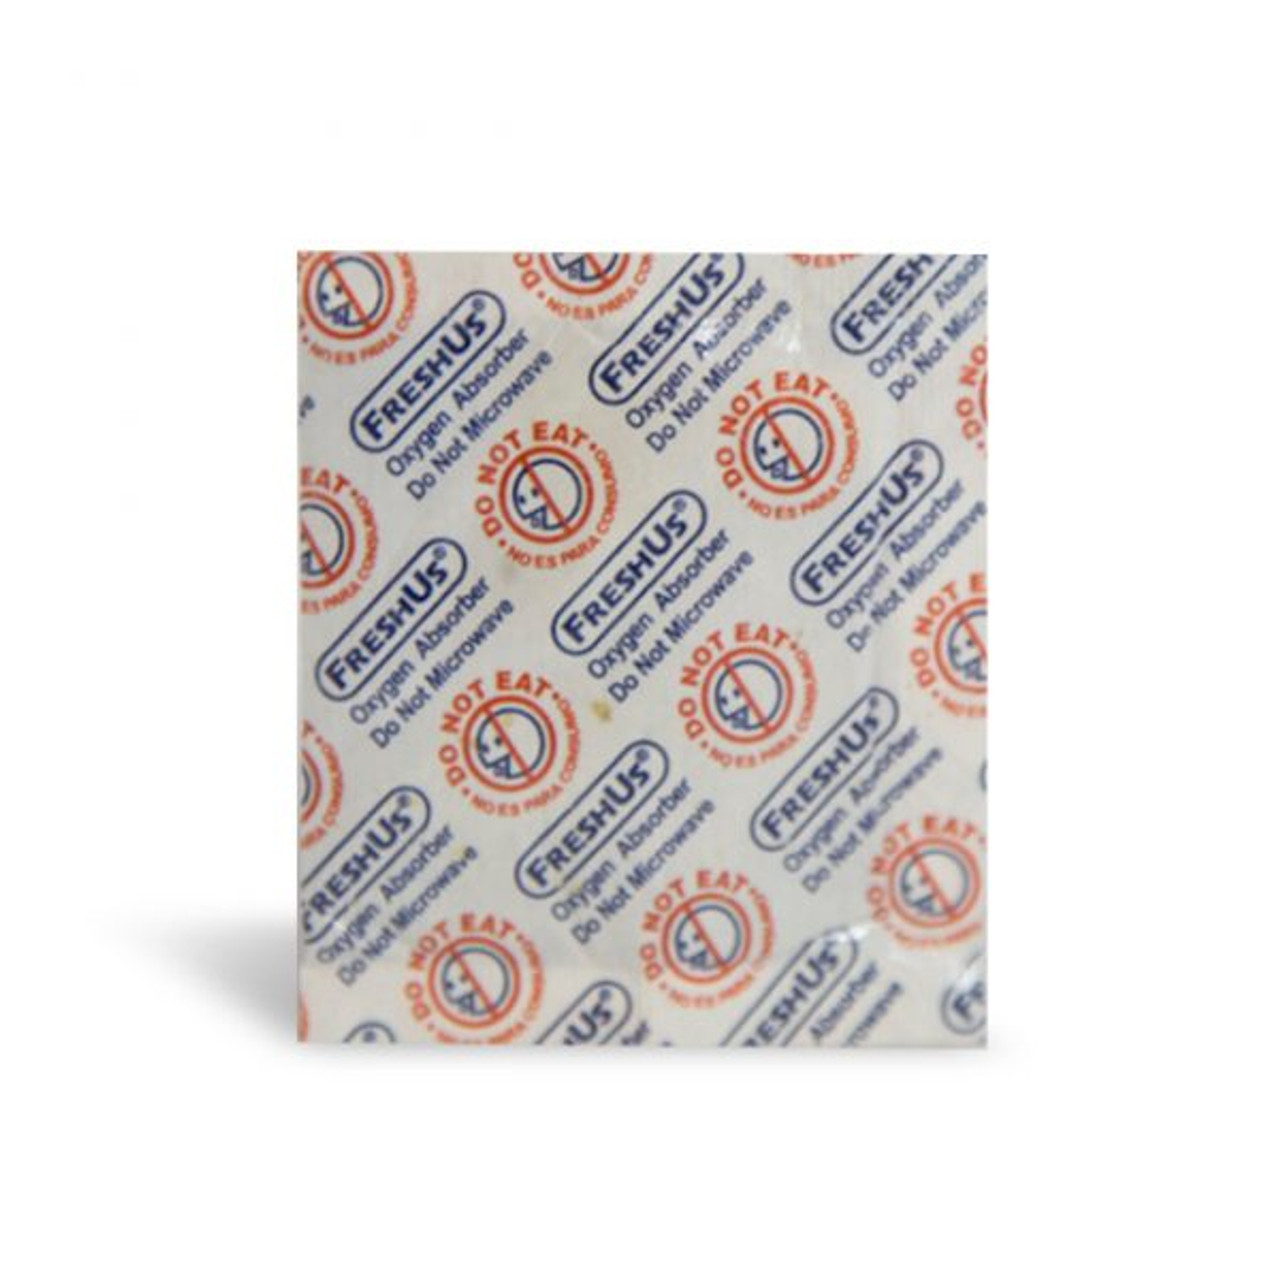 Harvest Right 50-pack Oxygen Absorbers For Freeze Dryer